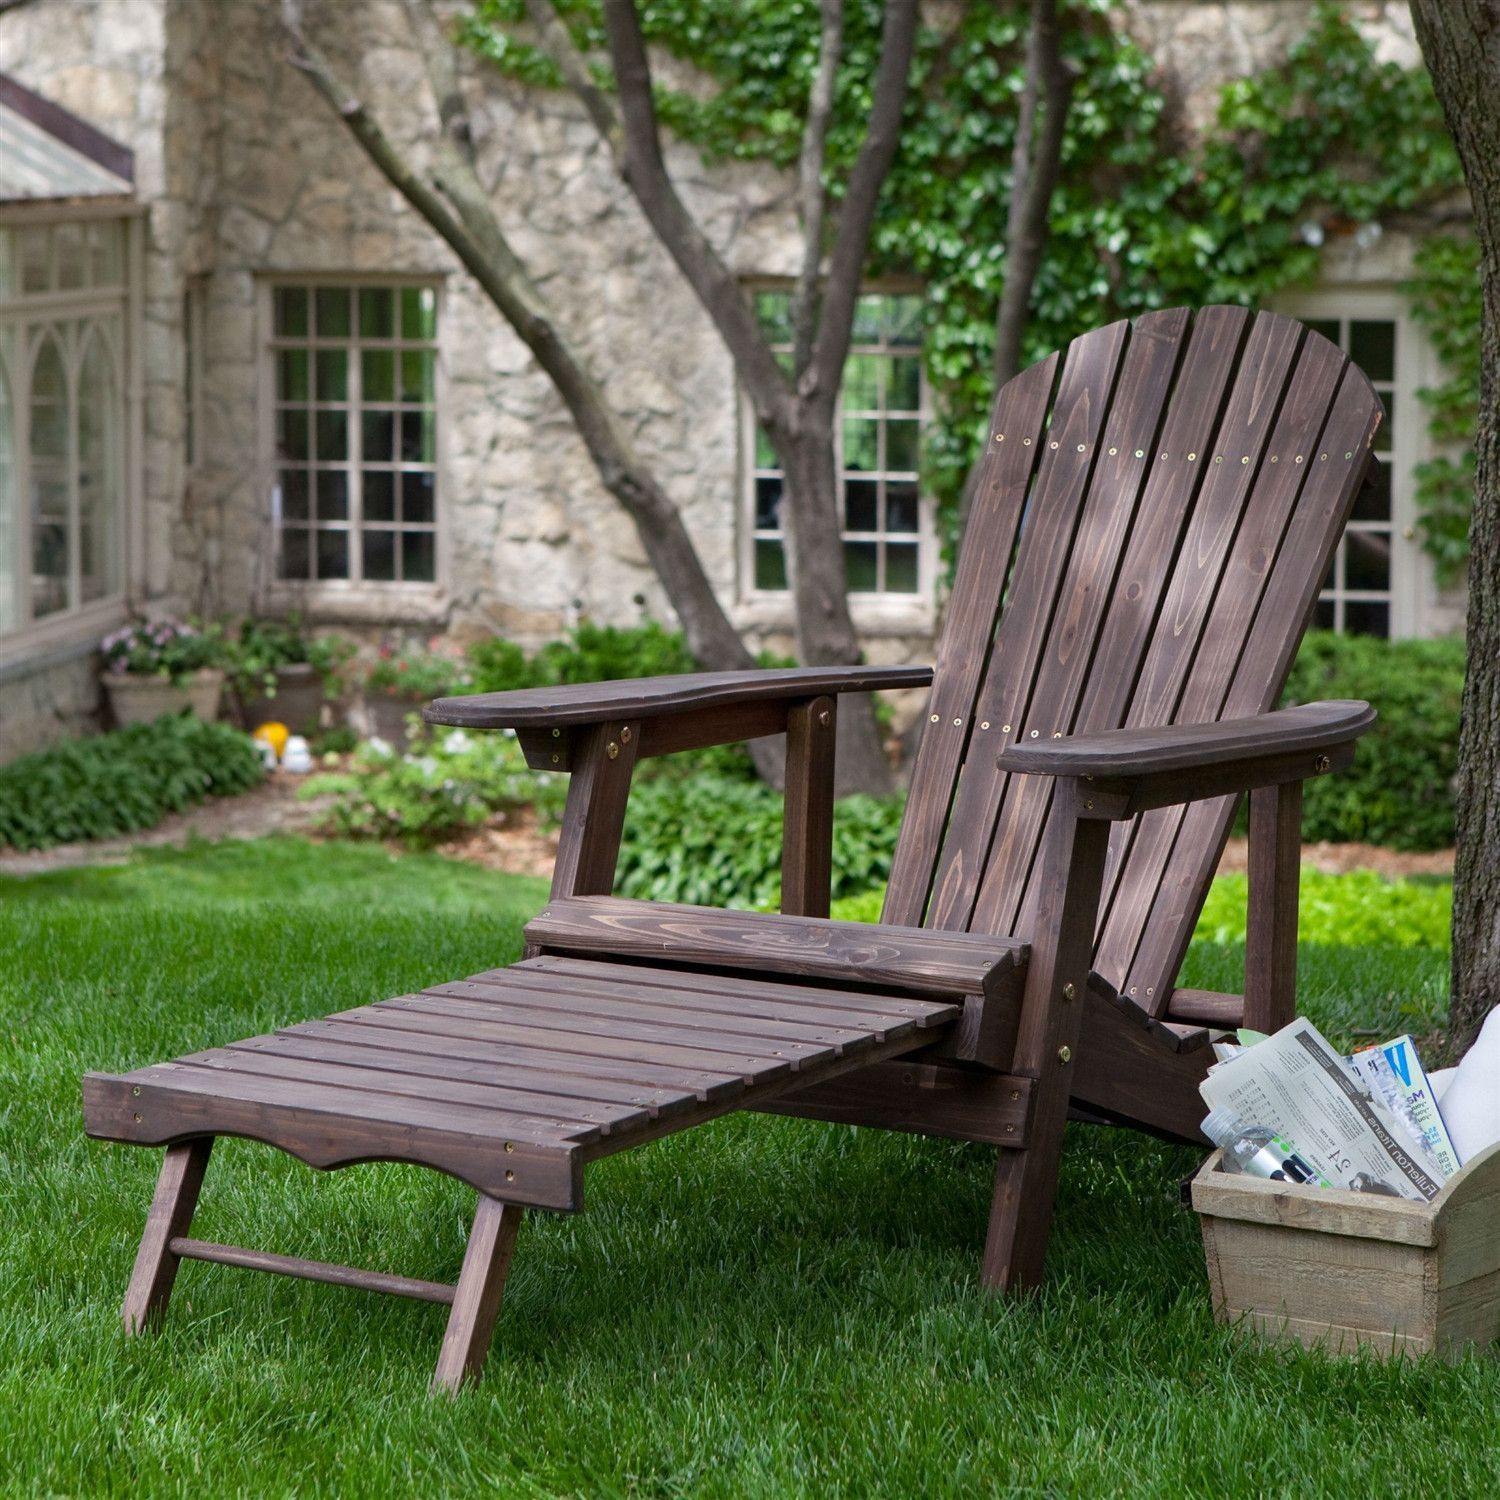 Superb Dark Brown Wood Adirondack Chair With Built In Retractable Gmtry Best Dining Table And Chair Ideas Images Gmtryco